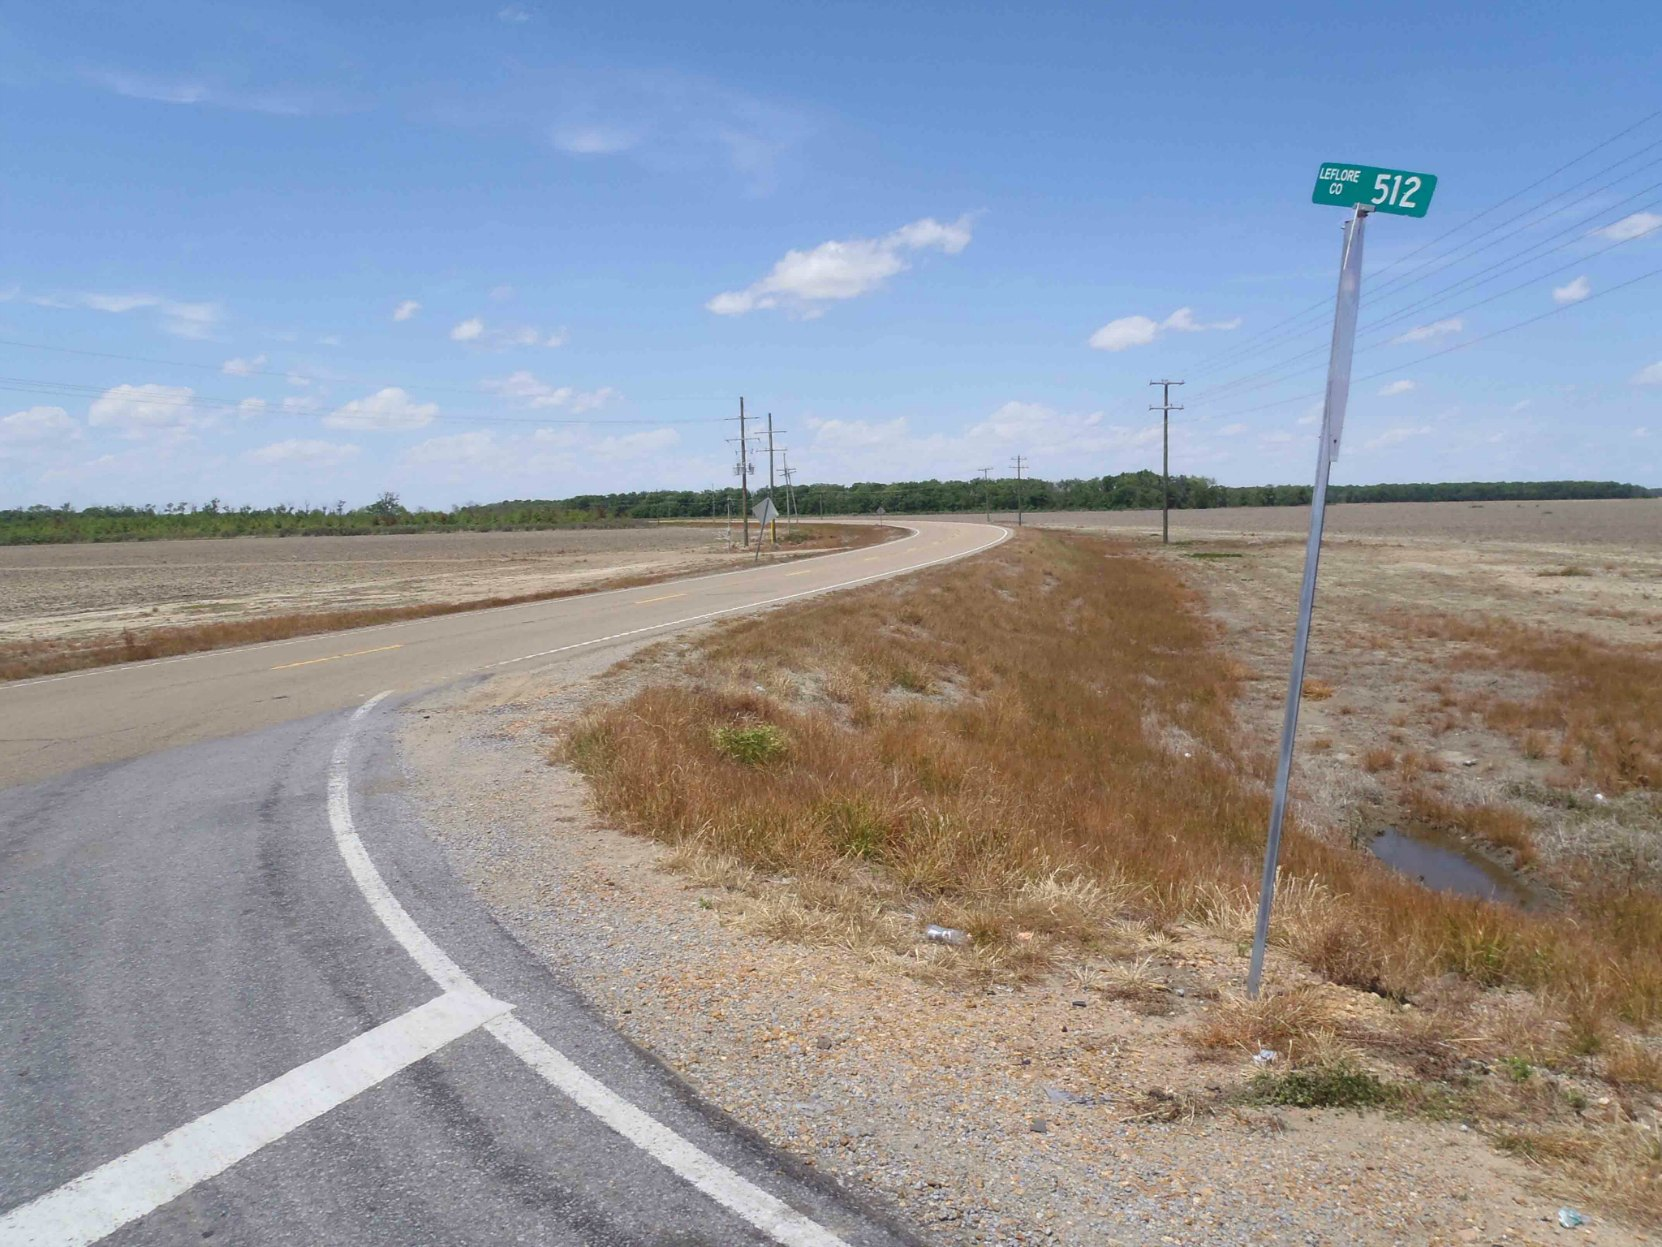 The second reputed site of Robert Johnson's poisoning in 1938, Highway 7 and Leflore County Road 512, near Quito, Leflore County, Mississippi, looking north.